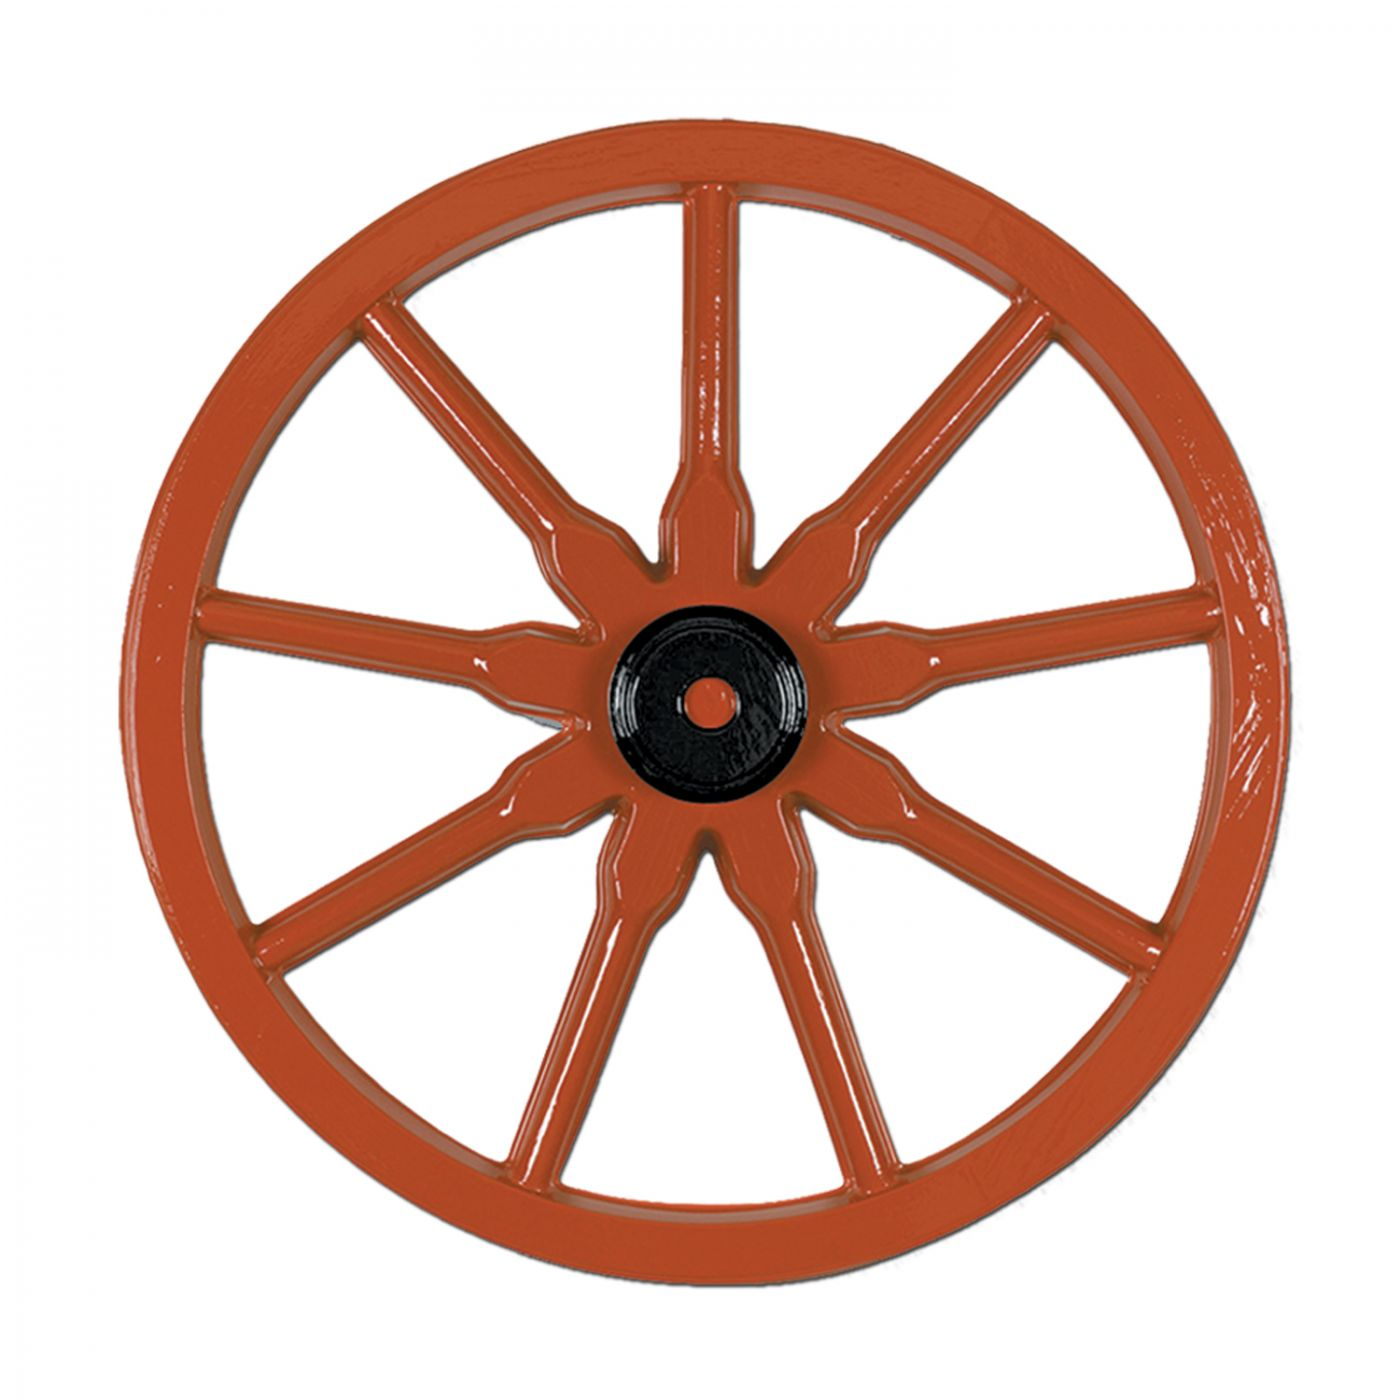 Plastic Wagon Wheel (24) image